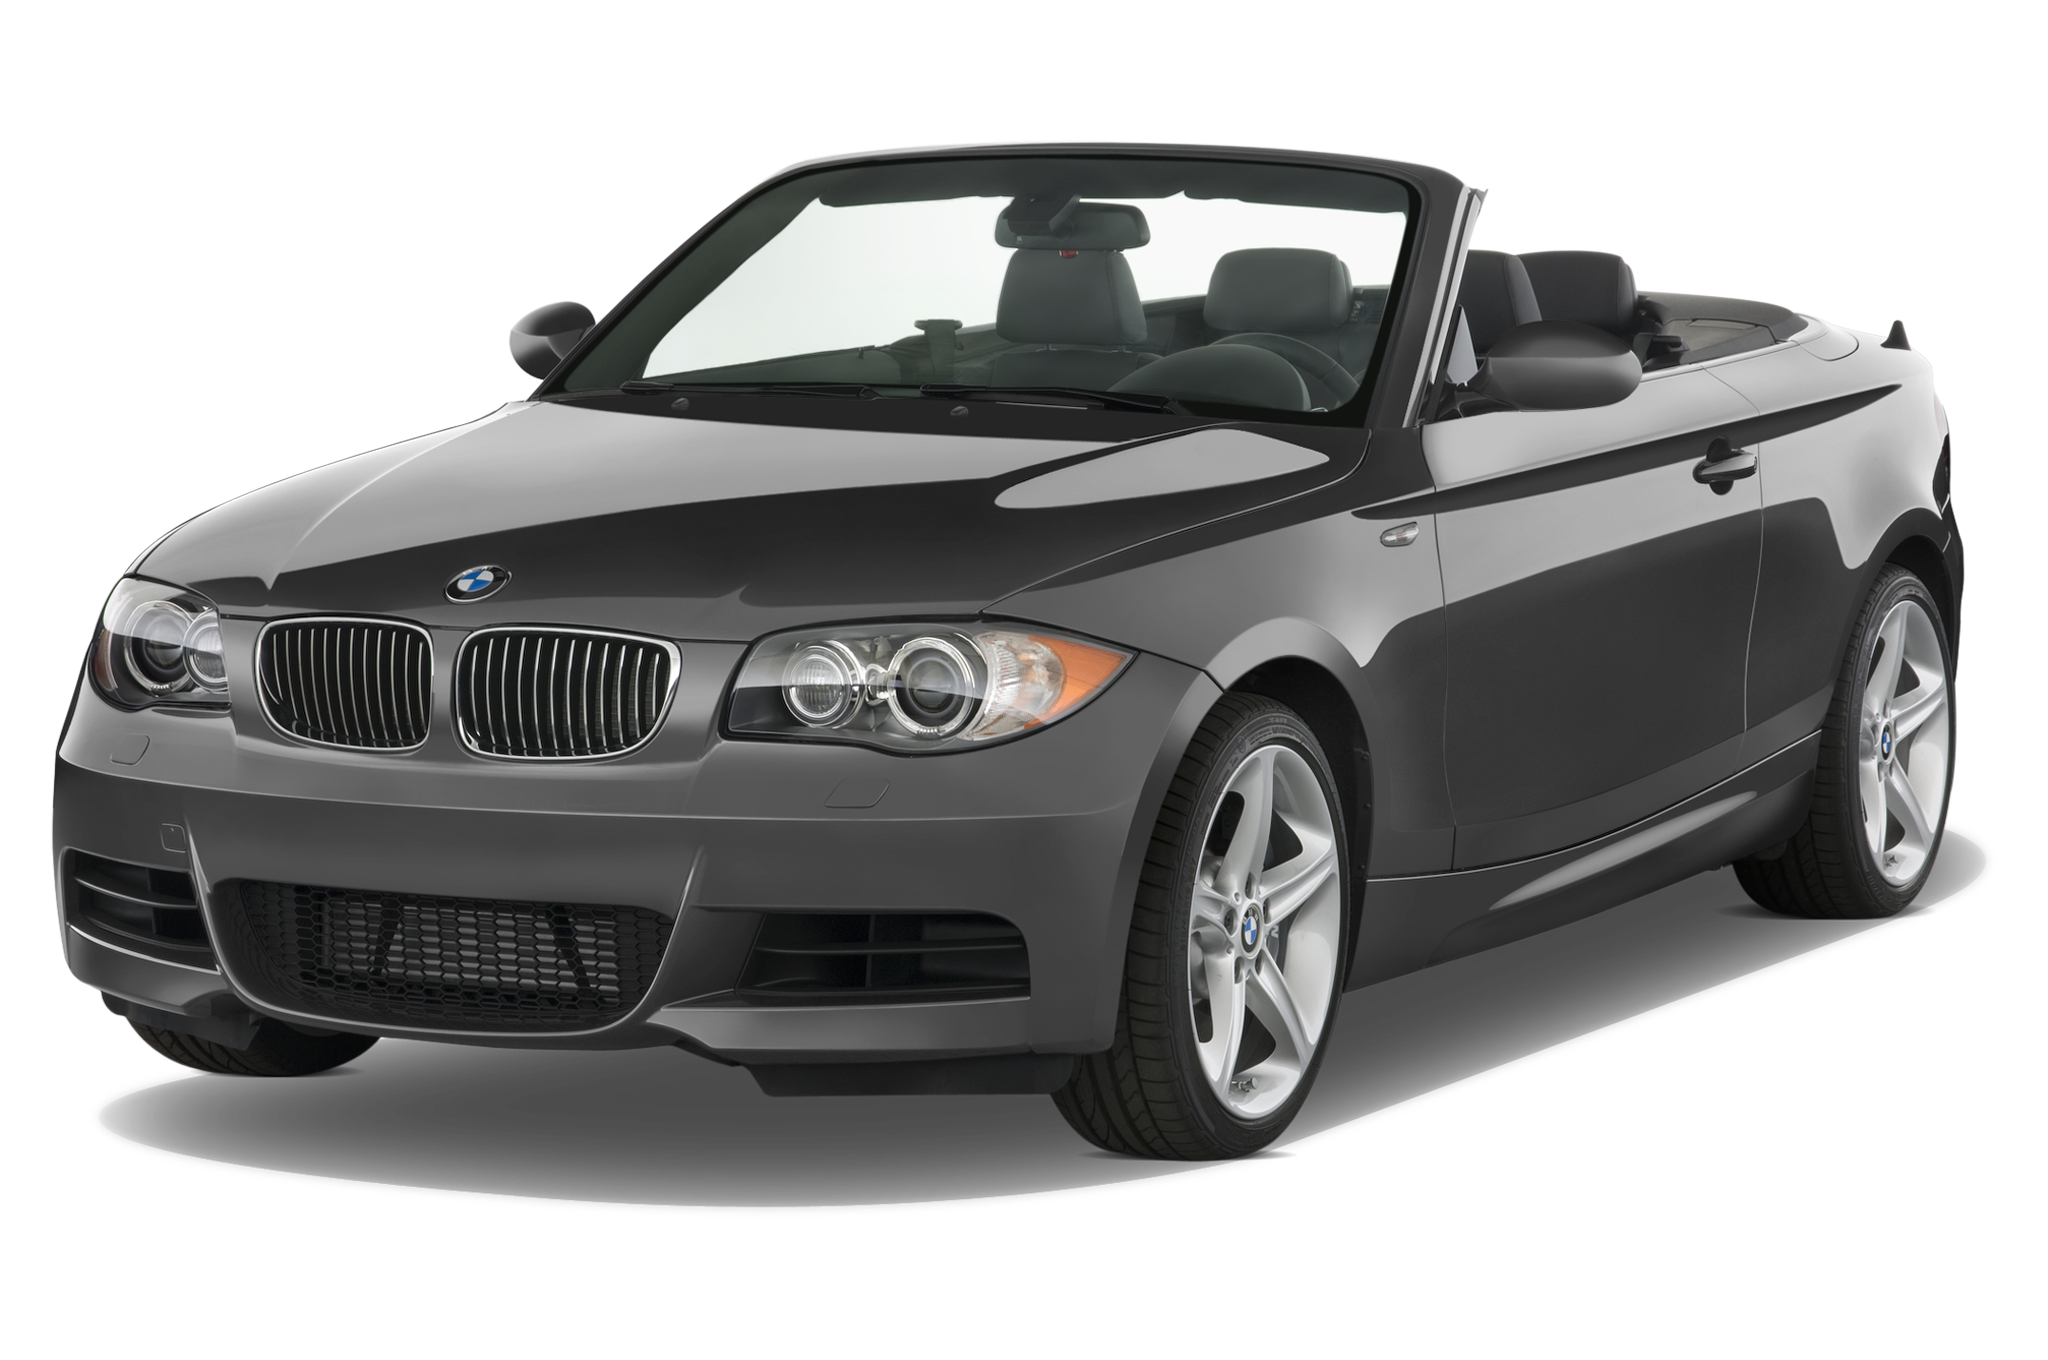 bmw 128i convertible news of new car release 2012 BMW 328I Coupe 2009 BMW 328I Coupe Sport